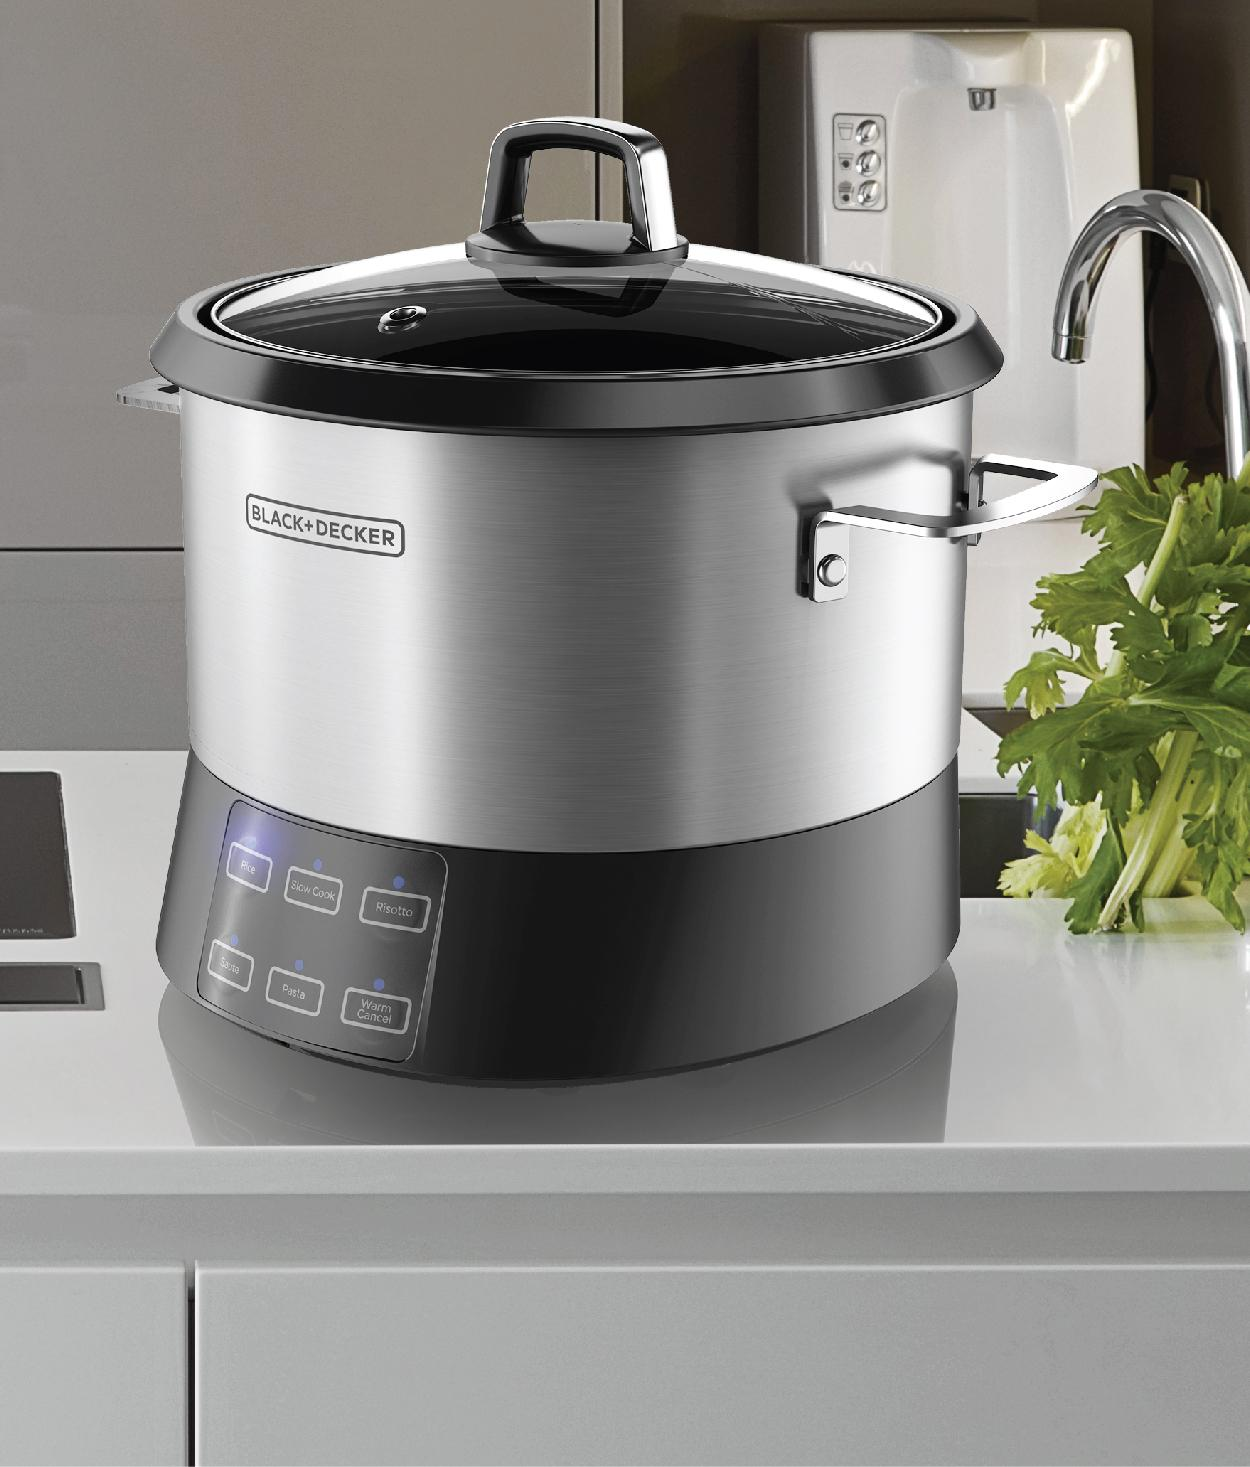 black decker rcr520s all in one cooking pot 20 cup cooked